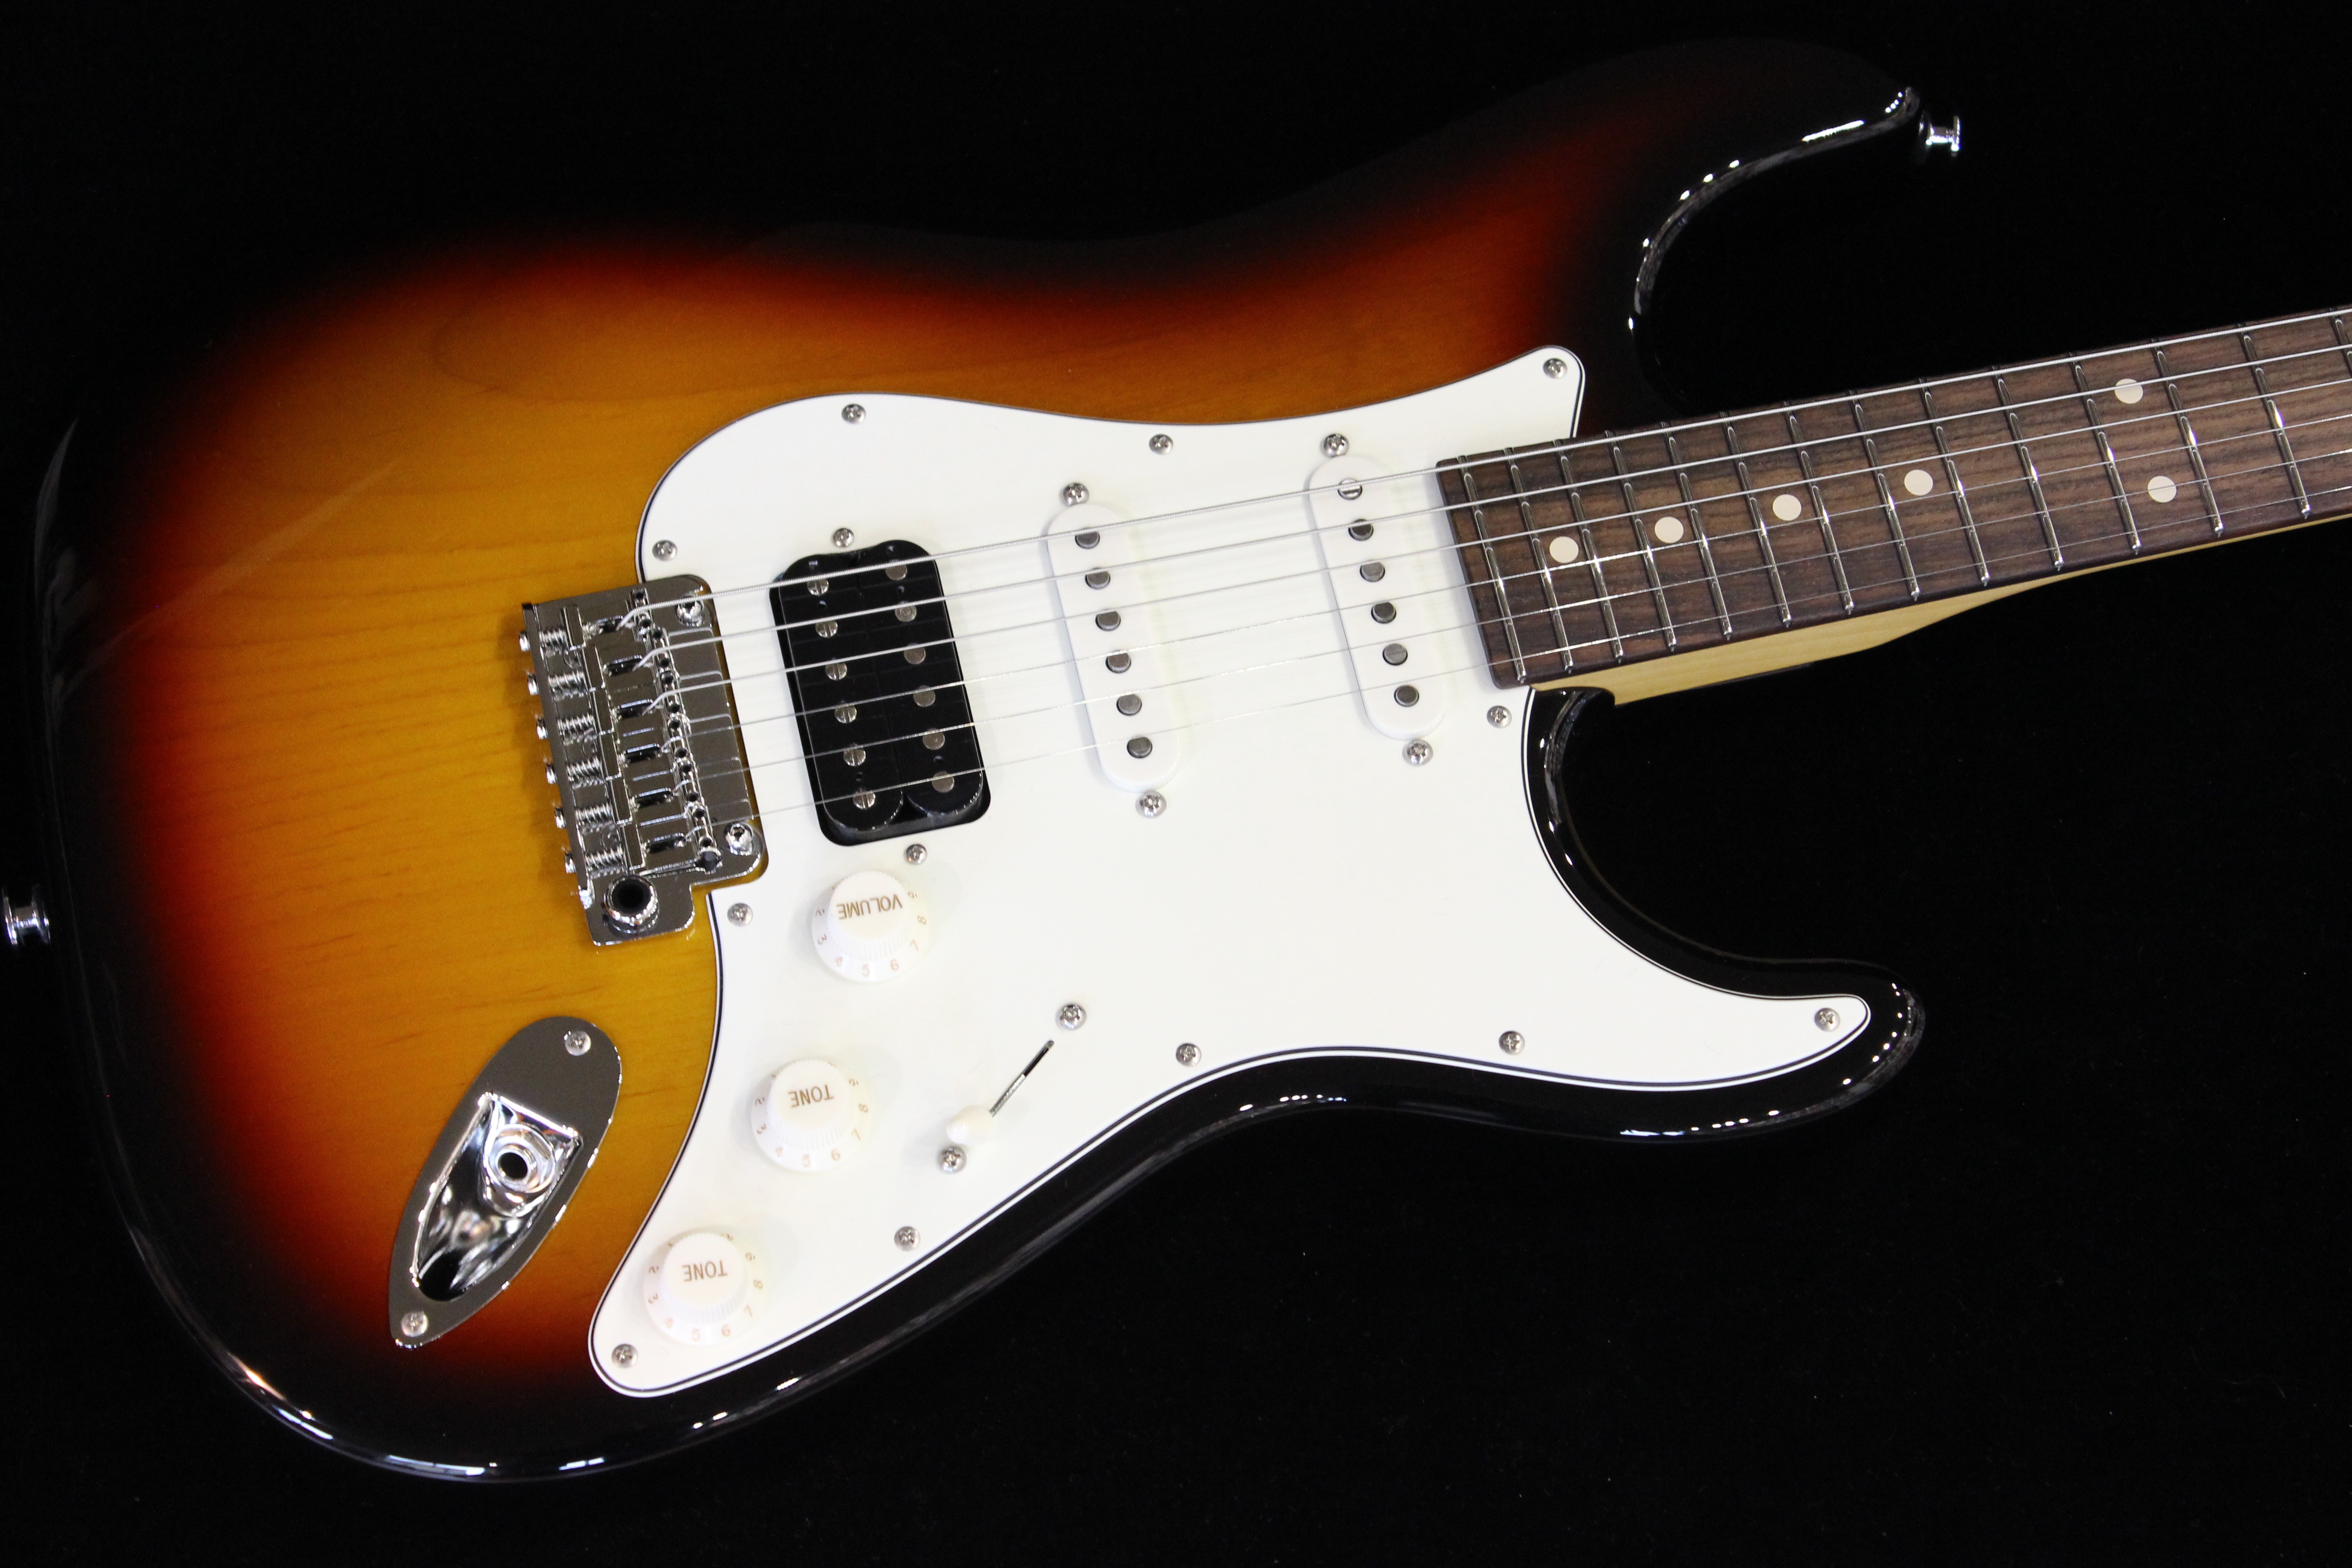 Wonderful How To Wire Ssr Thick Hh 5 Way Switch Wiring Clean Free Technical Service Bulletins Online Car Alarm Diagram Old Security Diagram BlackDimarzio Wiring Colors Suhr Classic Pro RW HSS 3 Tone Sunburst (SN: JST3R9M) | Gino Guitars